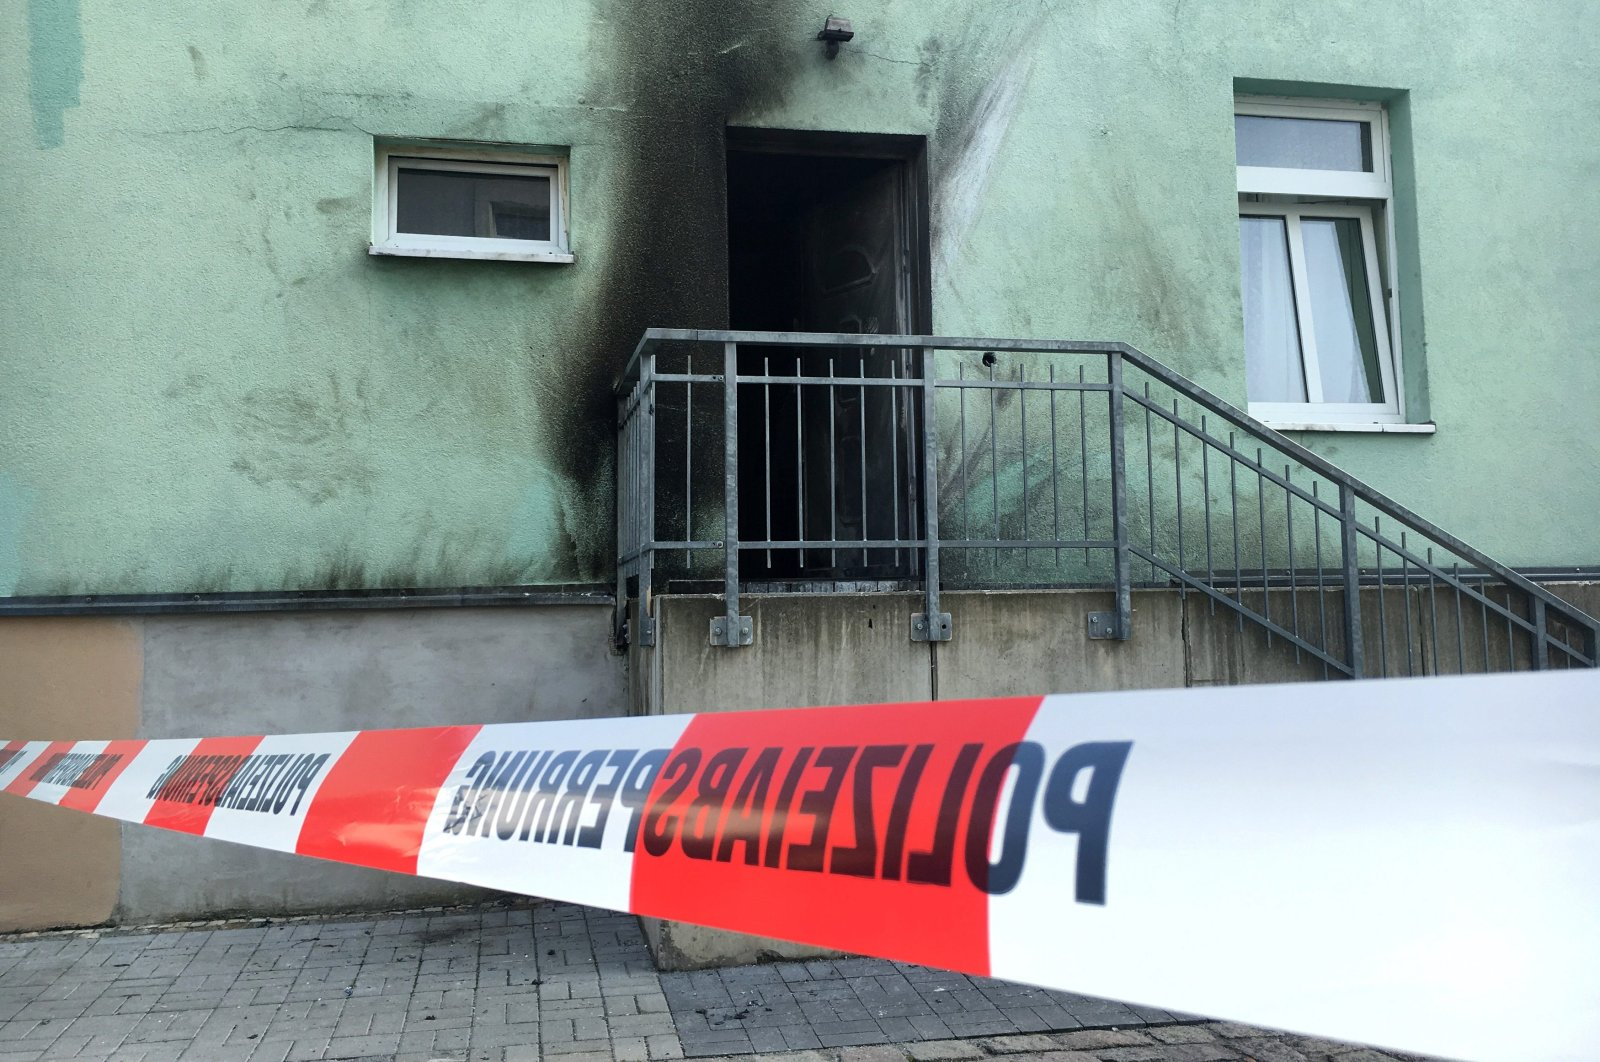 188 Anti-Muslim Attacks Recorded in Germany in 3 Months, Interior Ministry Says